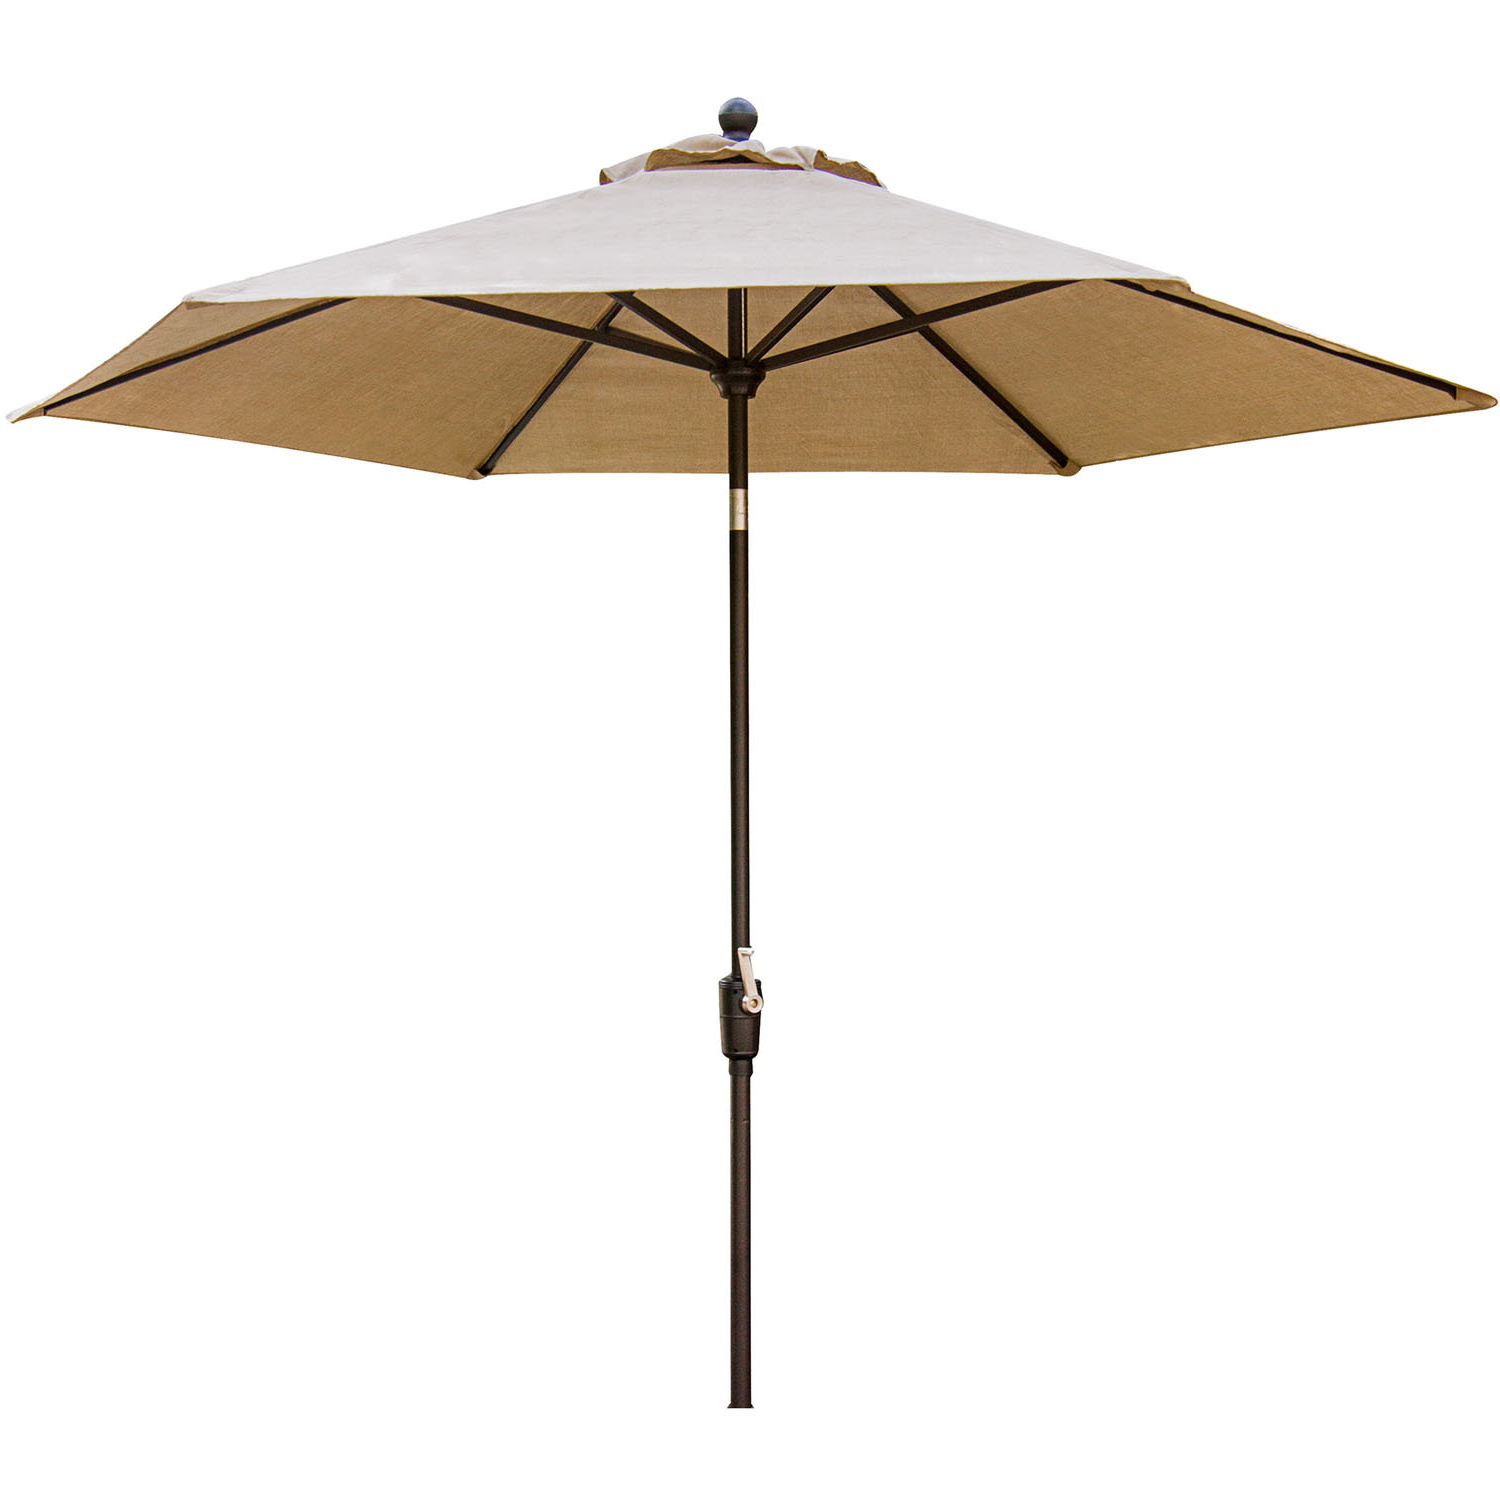 Annia 11' Market Umbrella In Favorite Bradford Patio Market Umbrellas (Gallery 17 of 20)